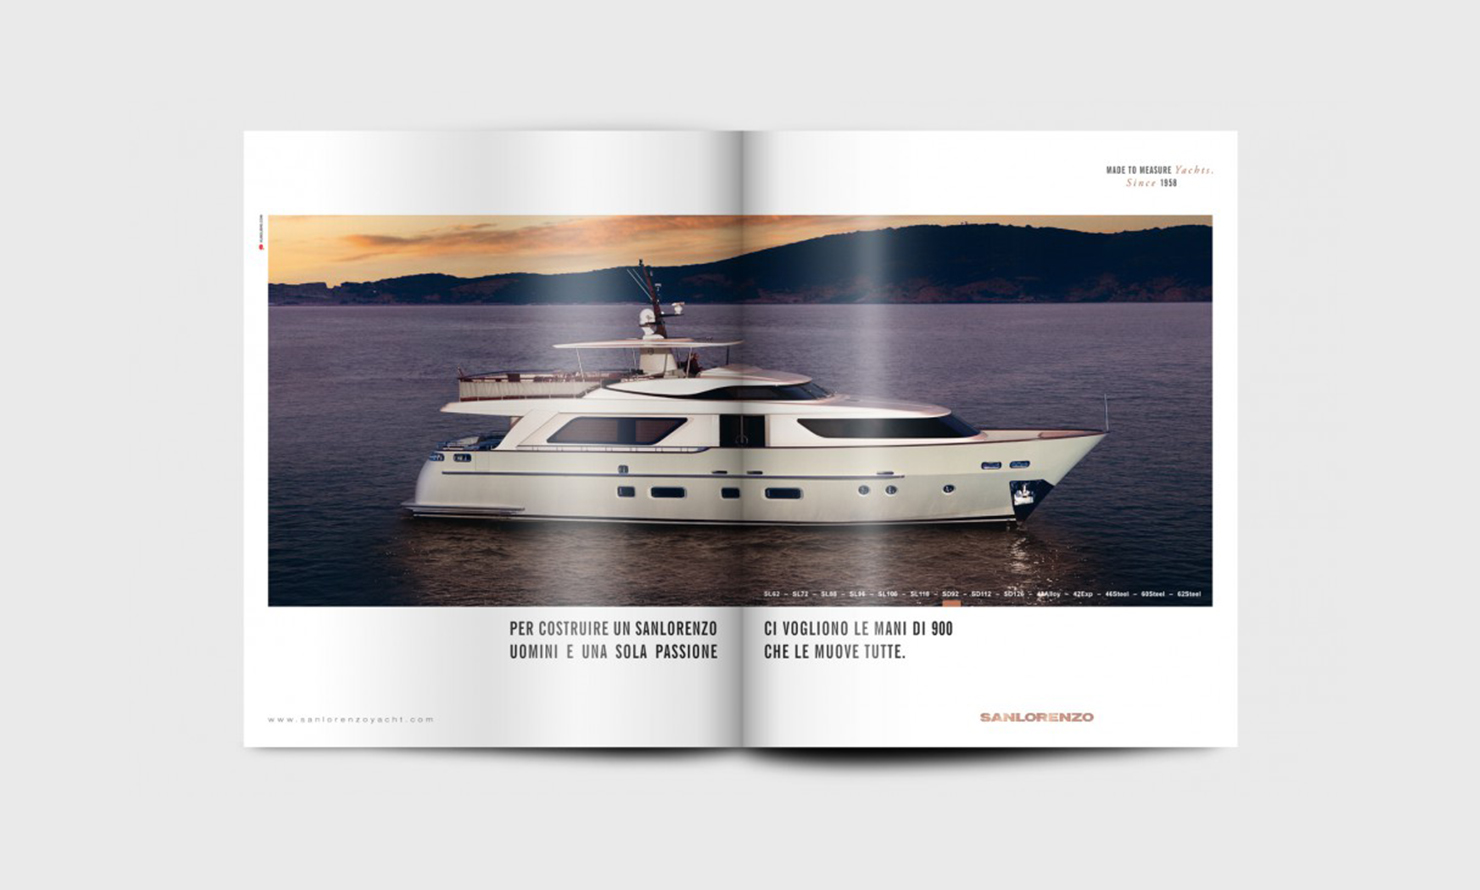 https://kubelibre.com/uploads/Slider-work-tutti-clienti/sanlorenzo-yacht-made-to-measure-yacht-since-1958-2.jpg